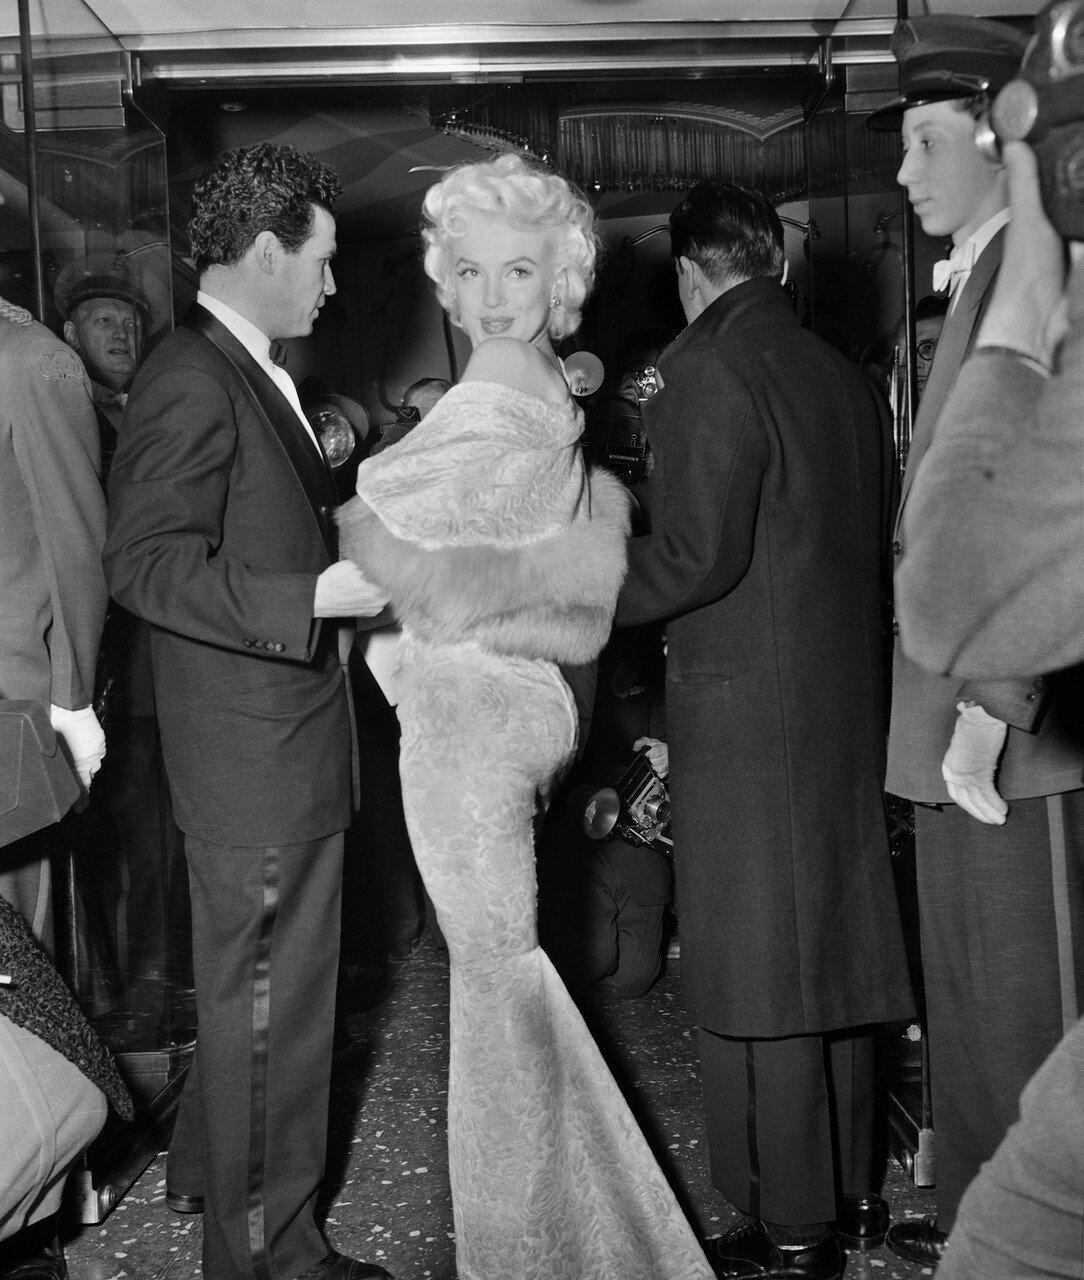 Marilyn Monroe Glancing Over Shoulder